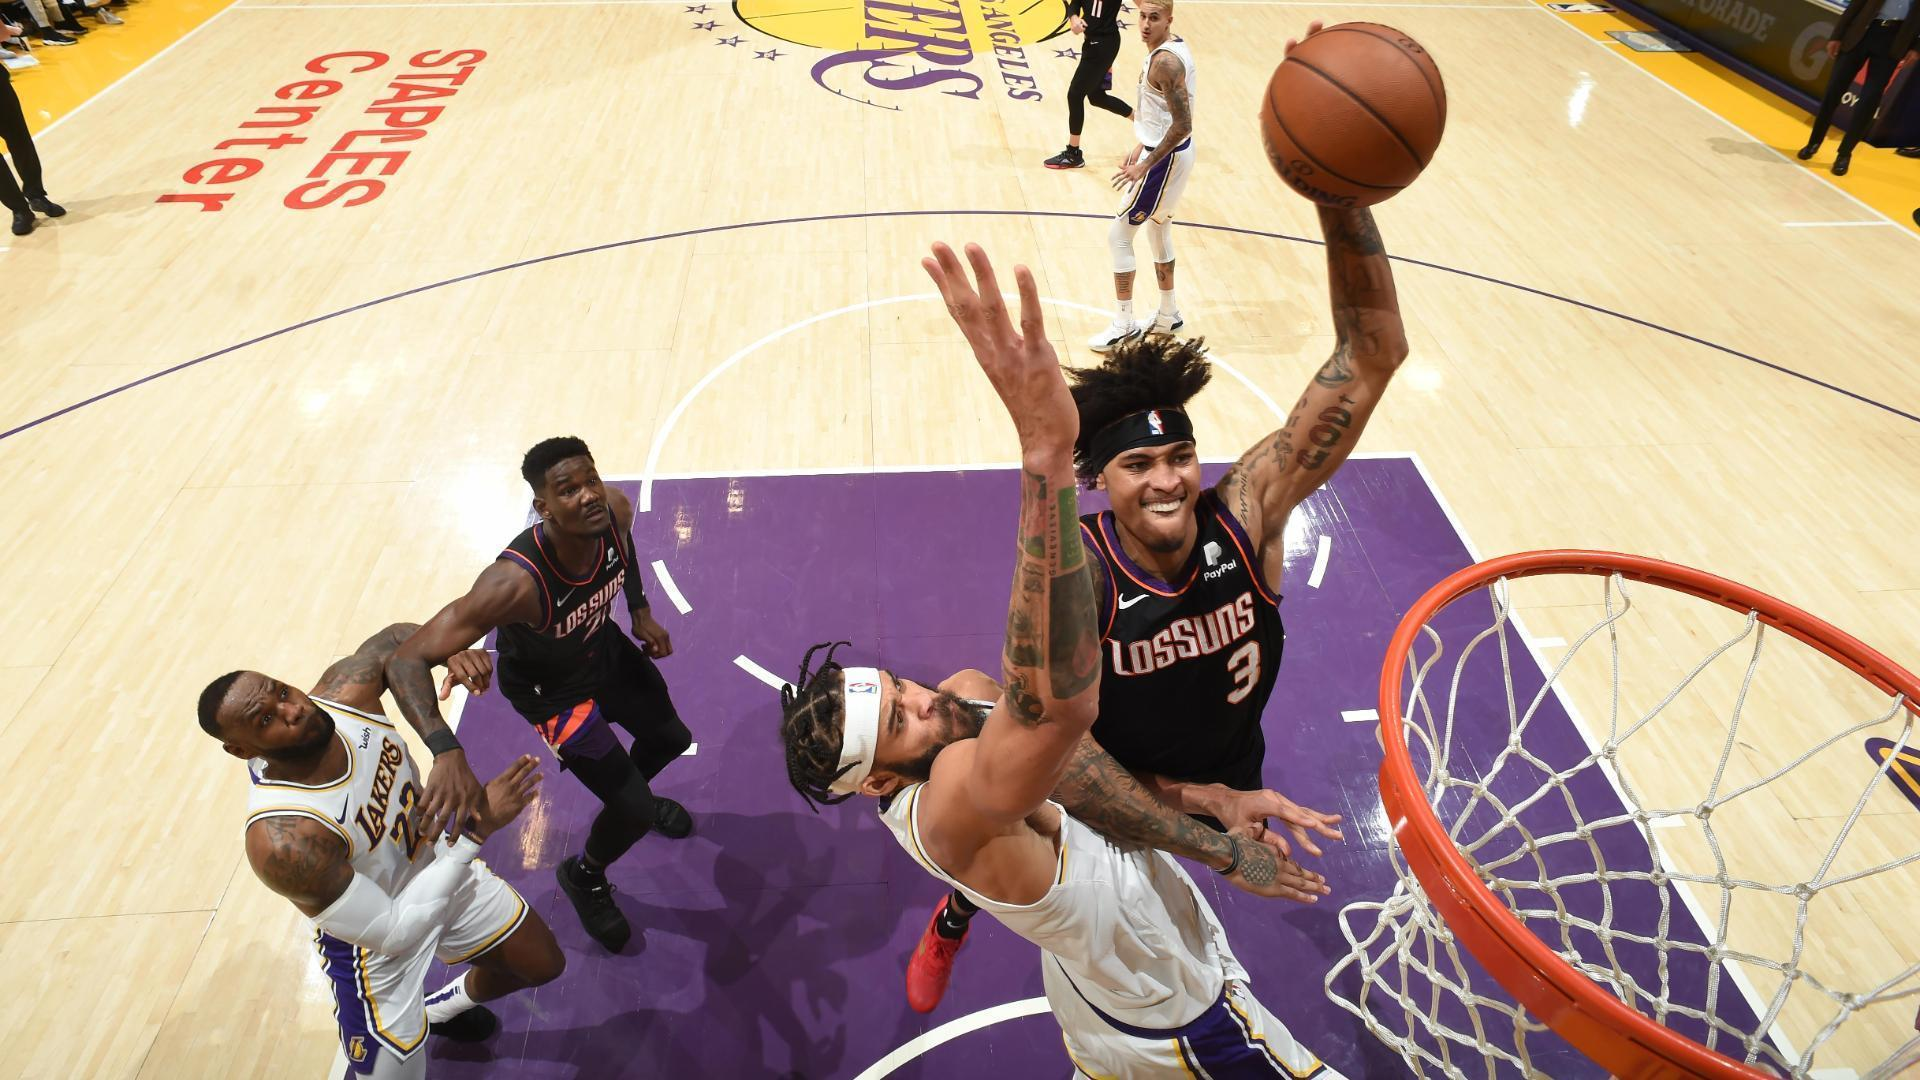 Oubre flexes after dunking on McGee